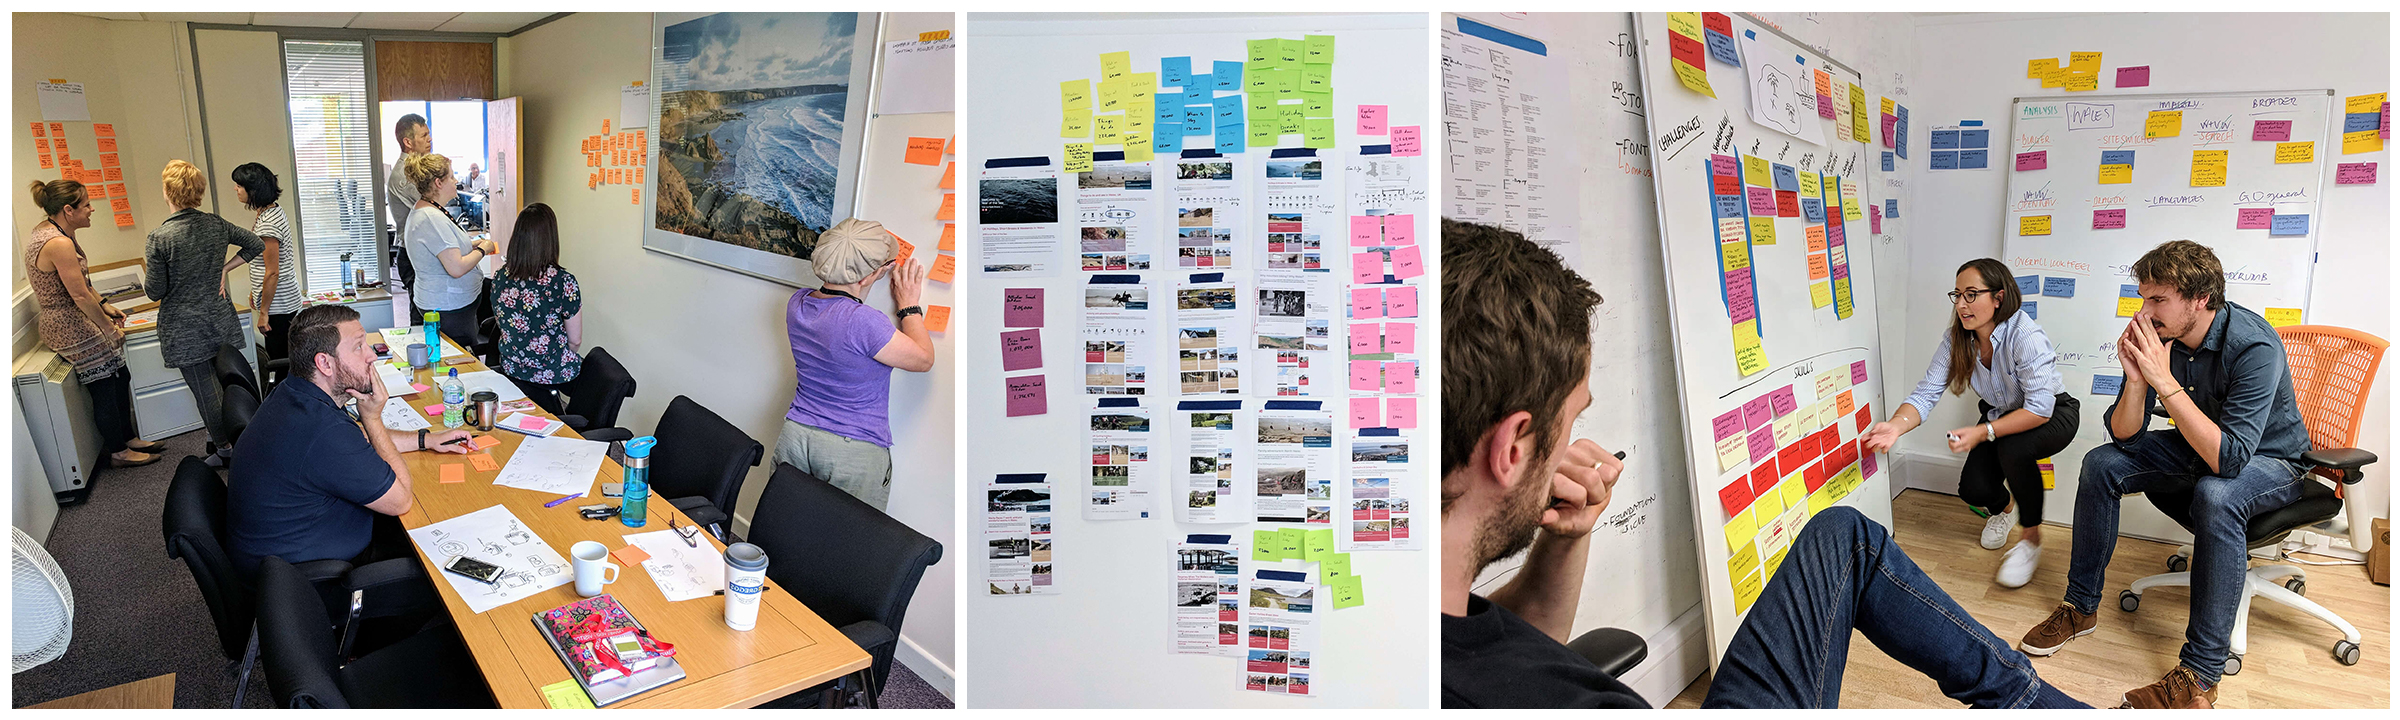 Workshops and analysing the current products content during the Discovery phase